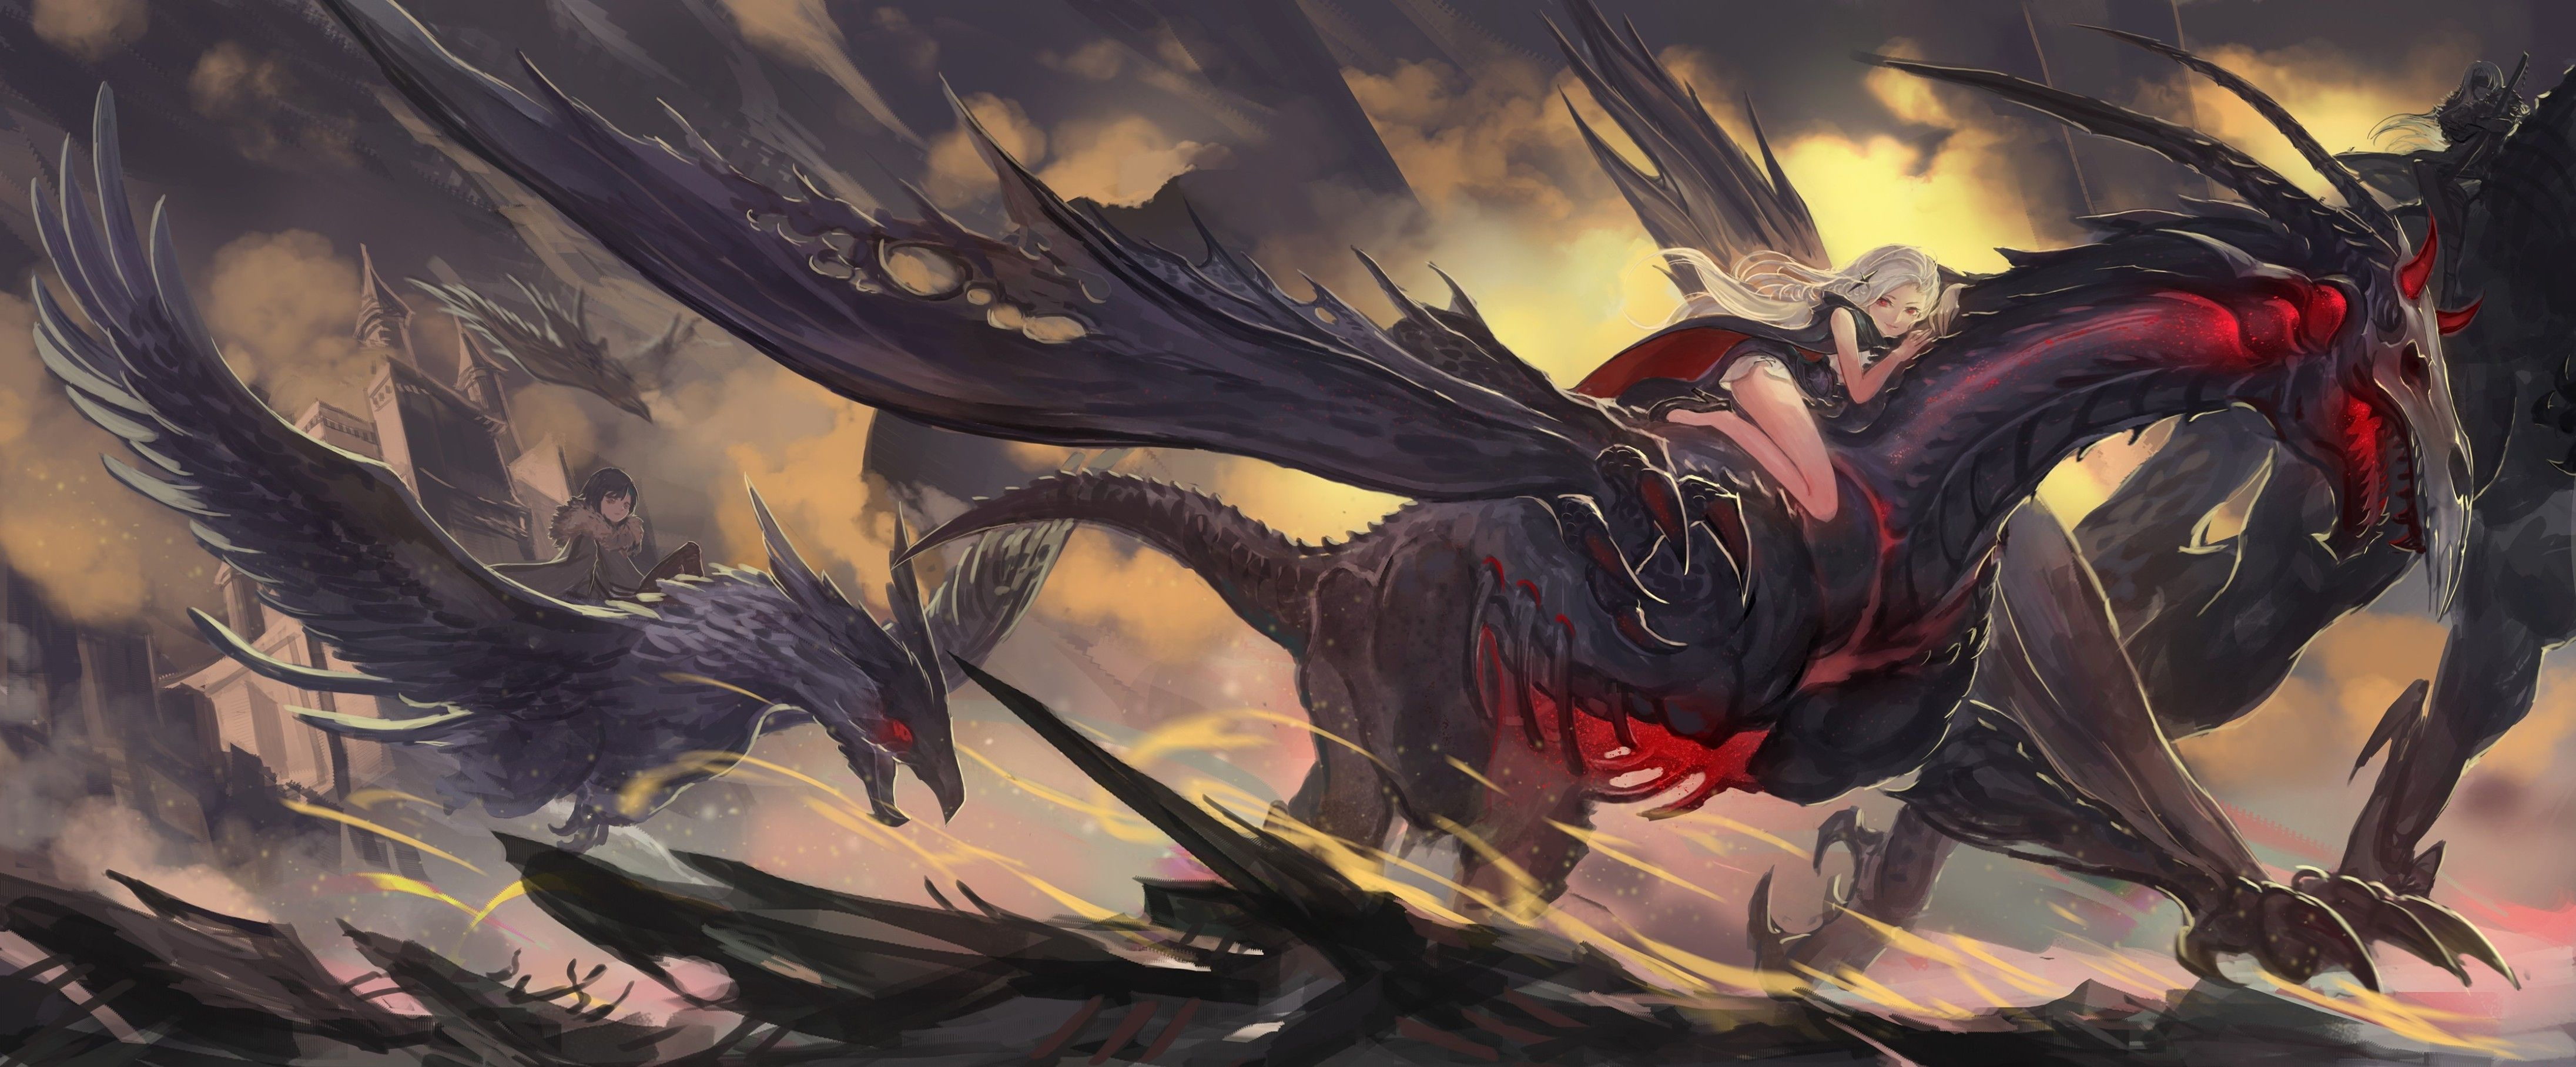 4383x1816 Pixiv Fantasia Fallen Kings Full HD Wallpaper and Background Image ...